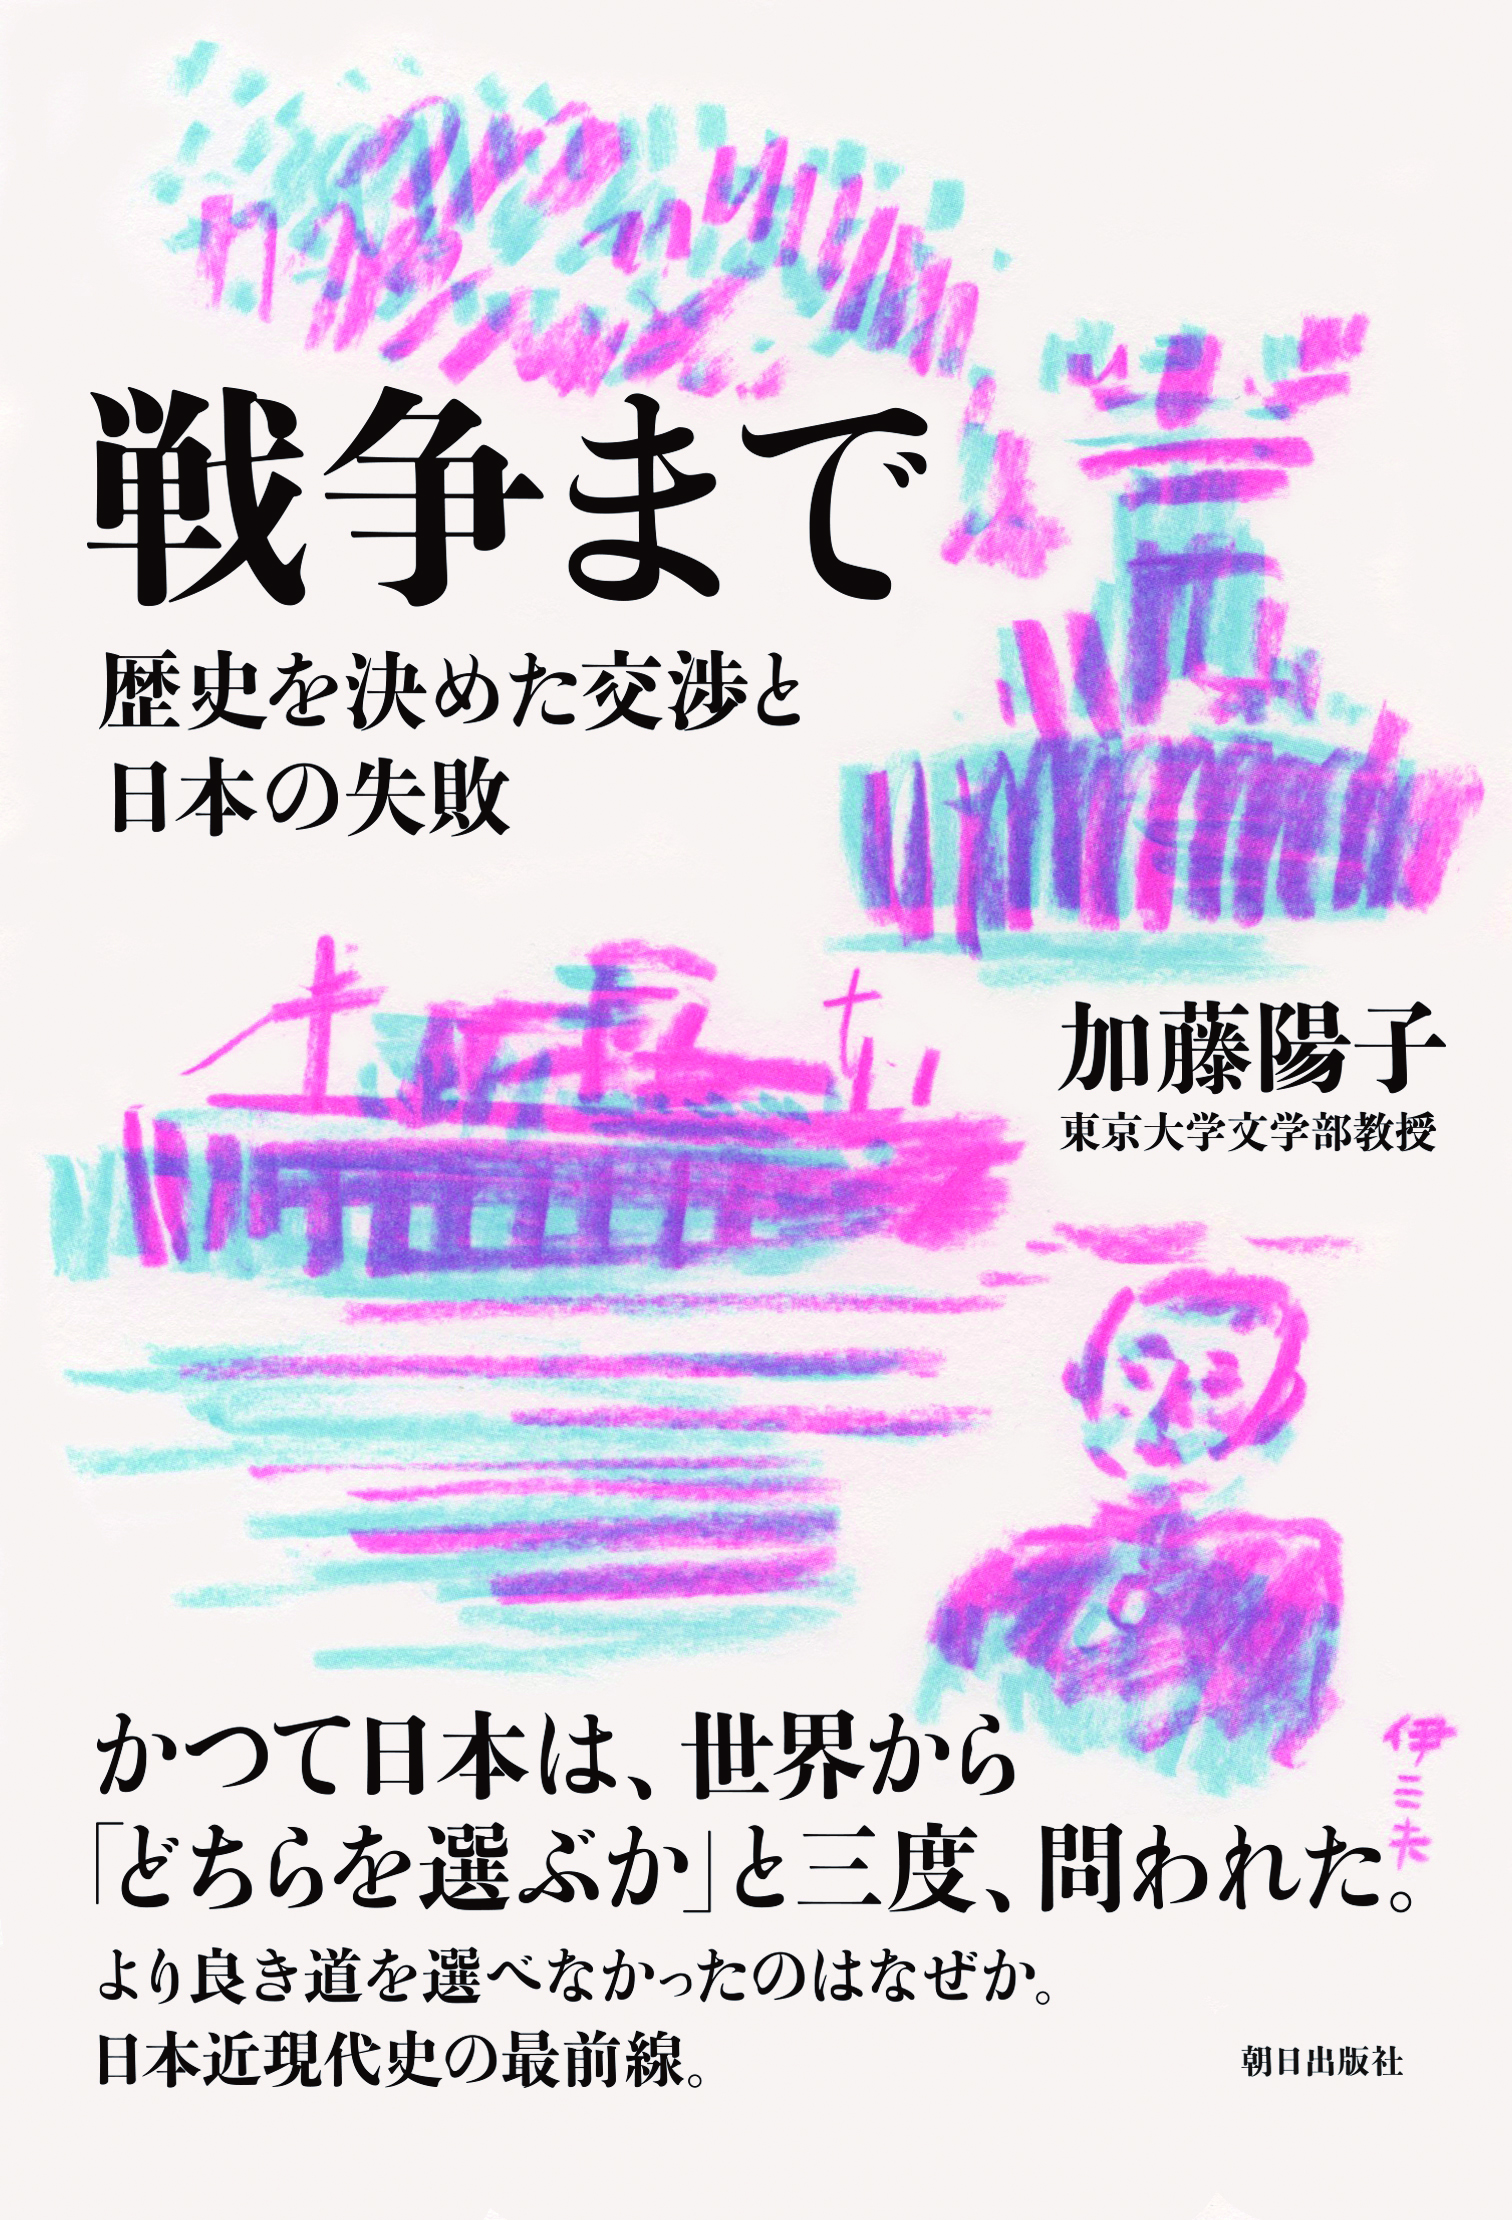 Illustrations drawn in pink and blue on a white cover